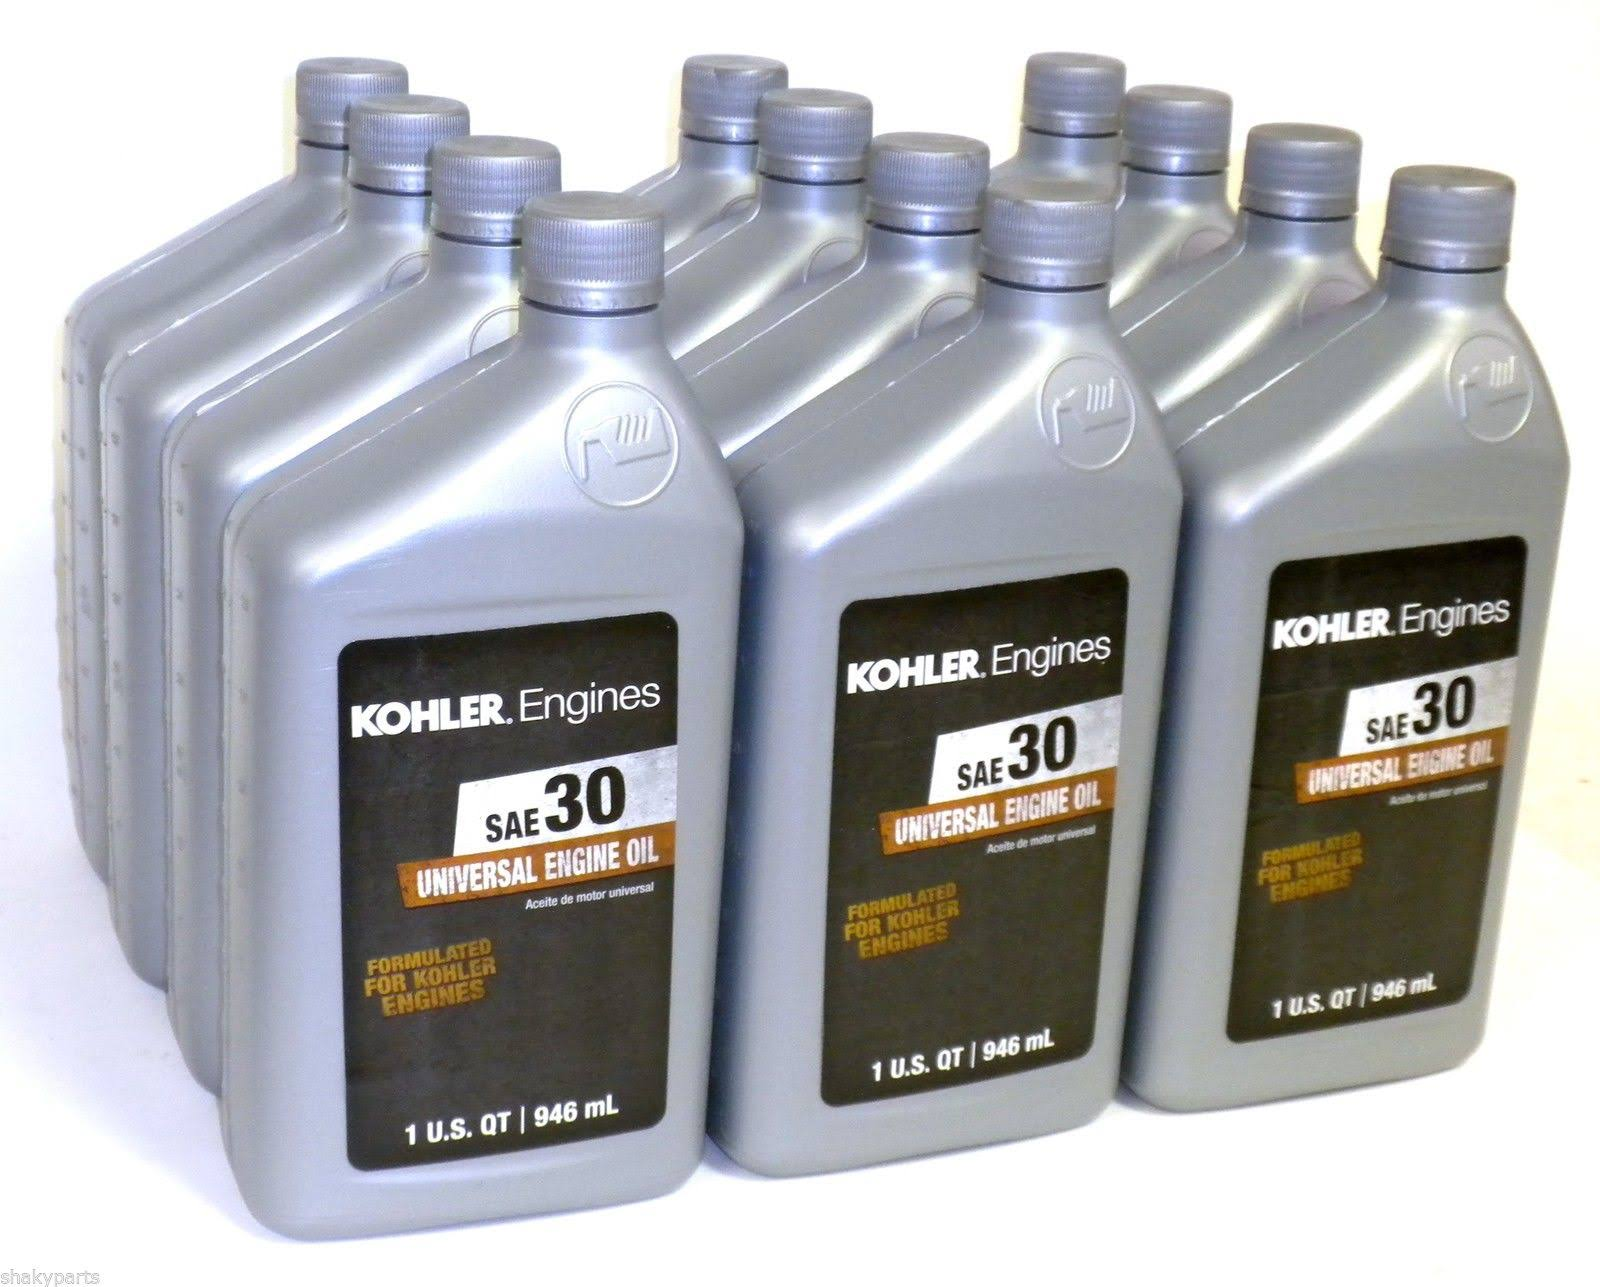 Kohler Case of Oil - Magnum